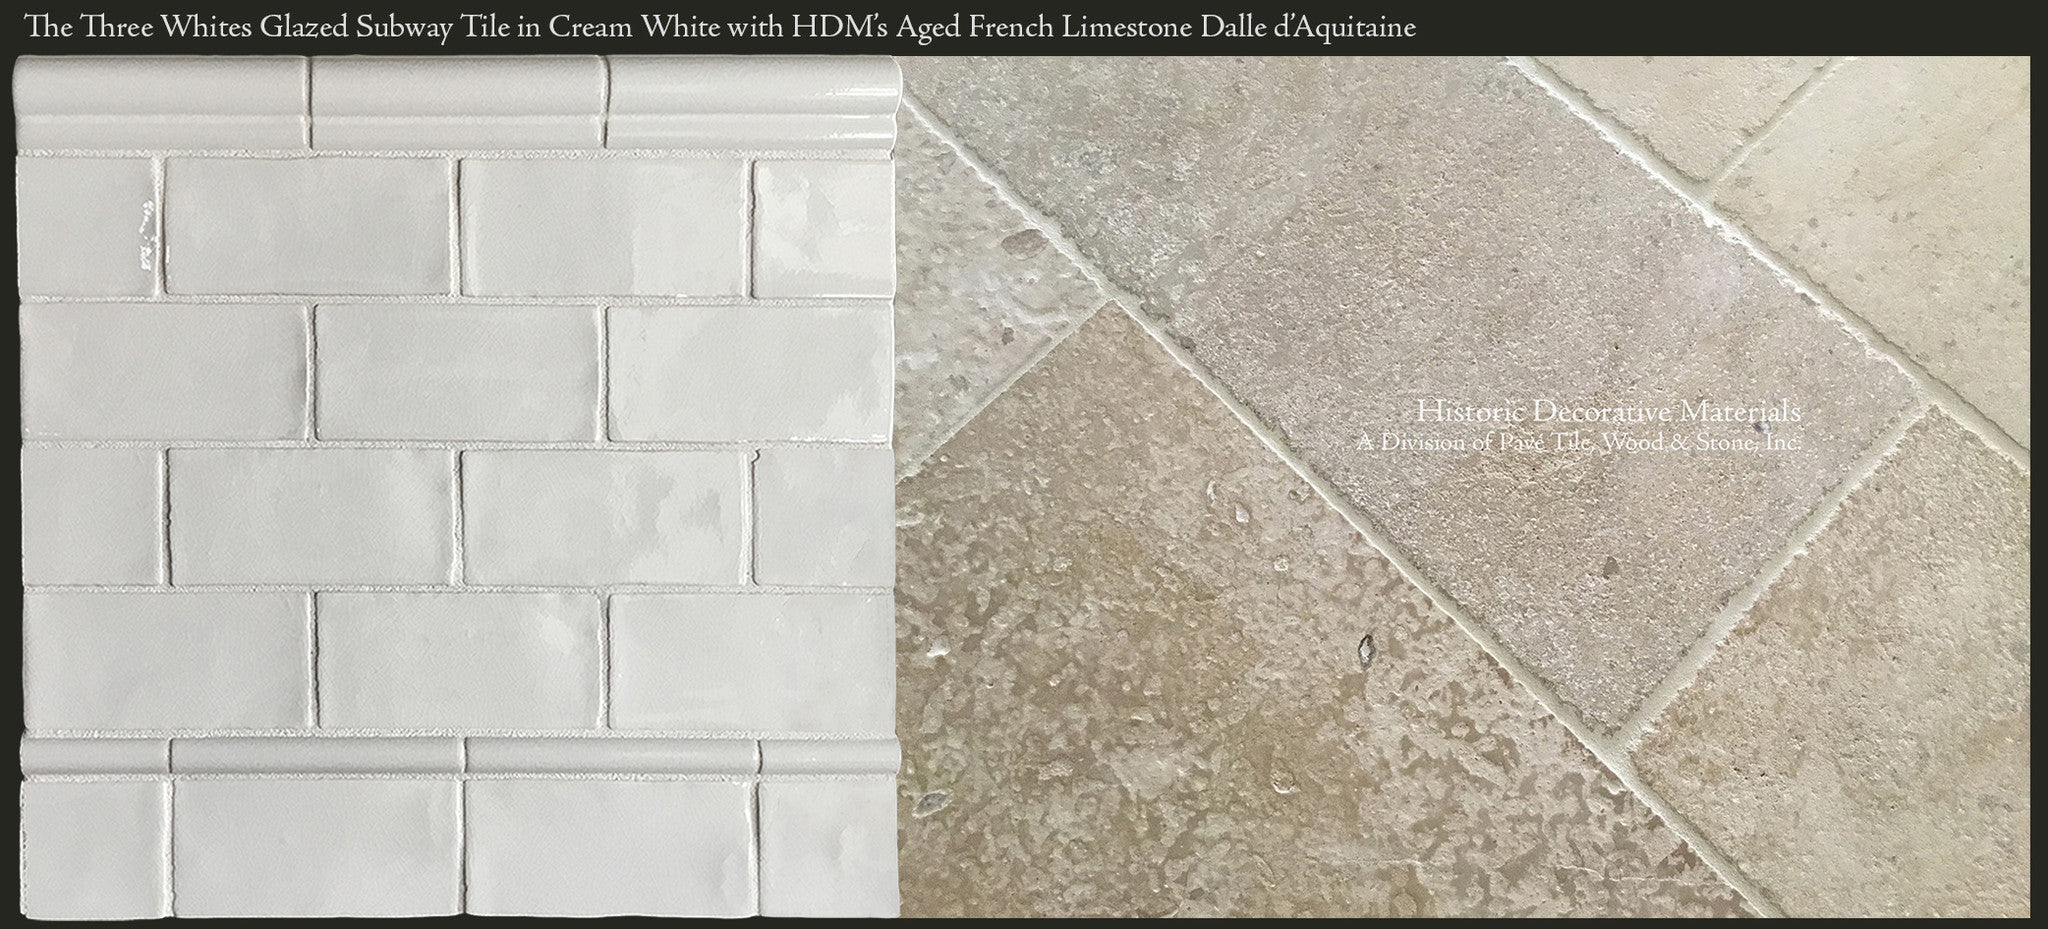 Ceramic glazed 3 x 6 subway tiles for kitchen back splash and three whites subway tile in perfect cream white beautifully paired with aged french limestone dalle d dailygadgetfo Choice Image